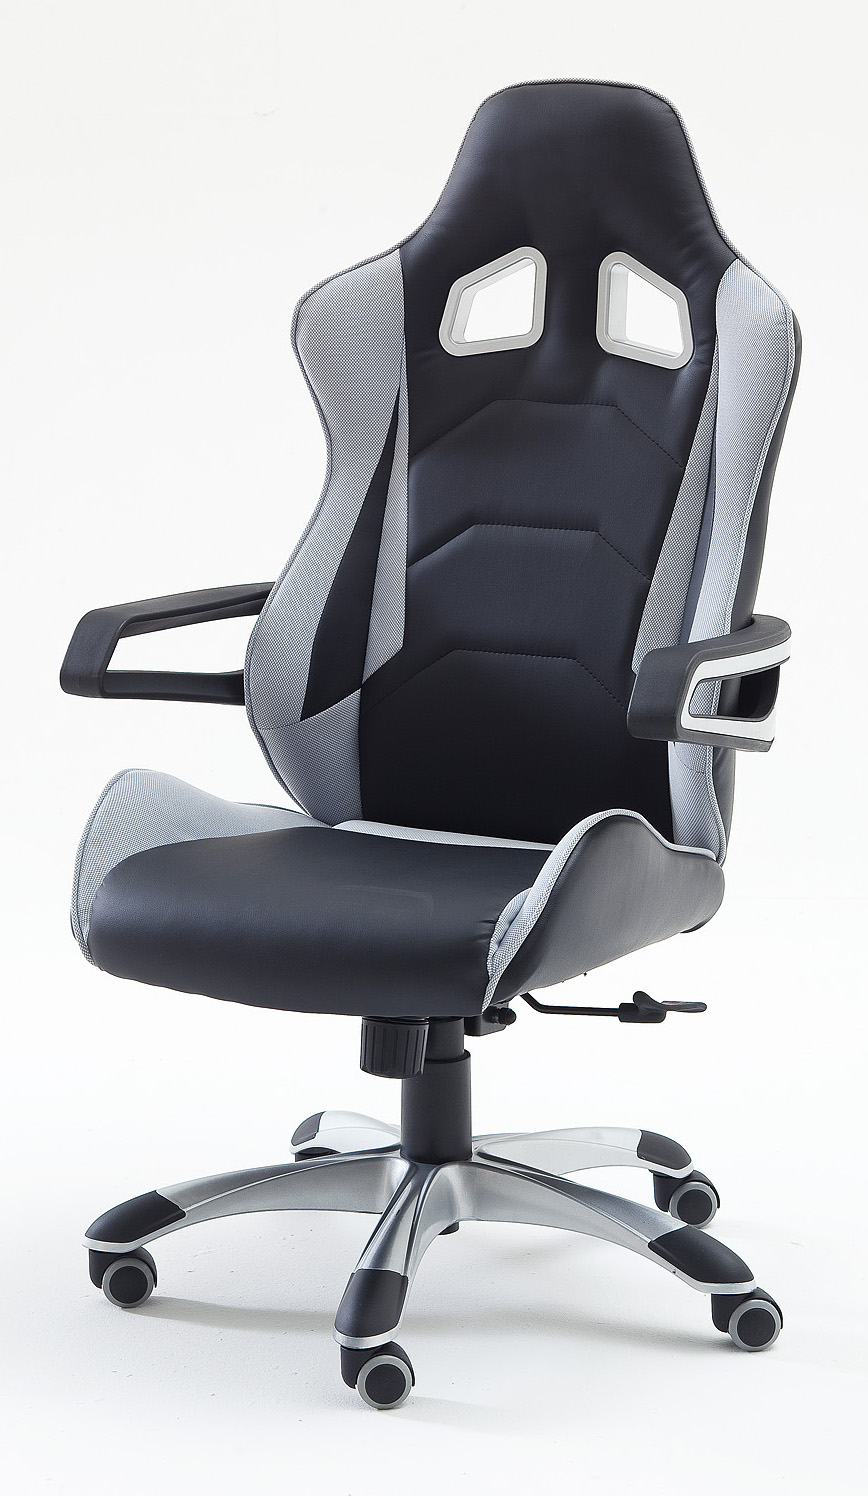 Image Result For Gaming Chair Kopen